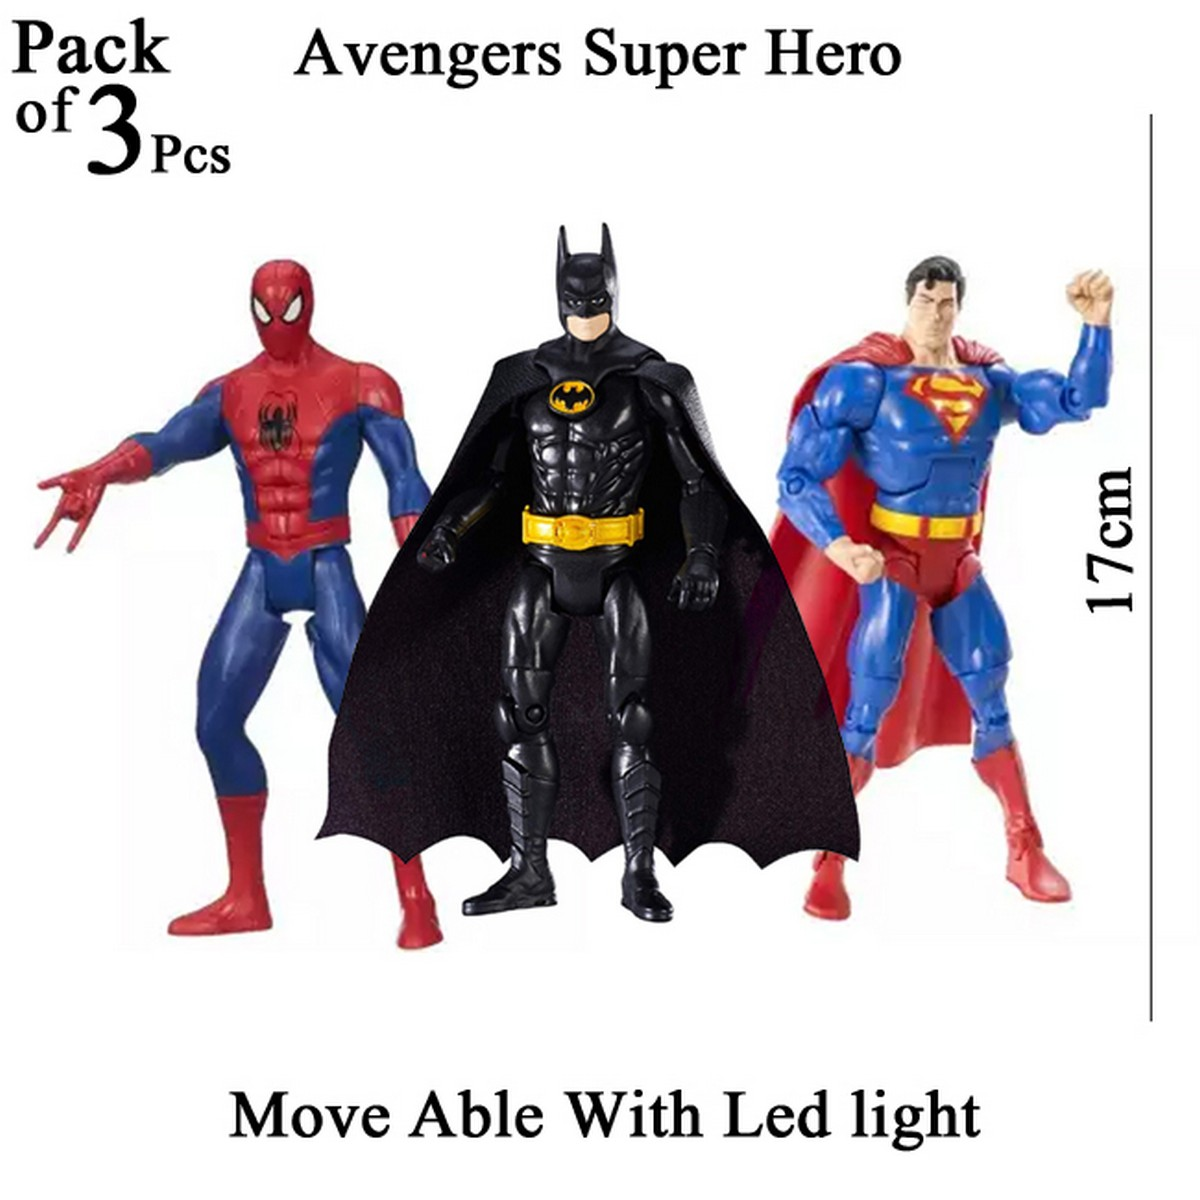 Pack of 3 pcs - Avengers Super Hero Action Figures With Led Light Toys For Kids and Boys Move able Spider Man Bat Man Super Man Spiderman Superman Batman